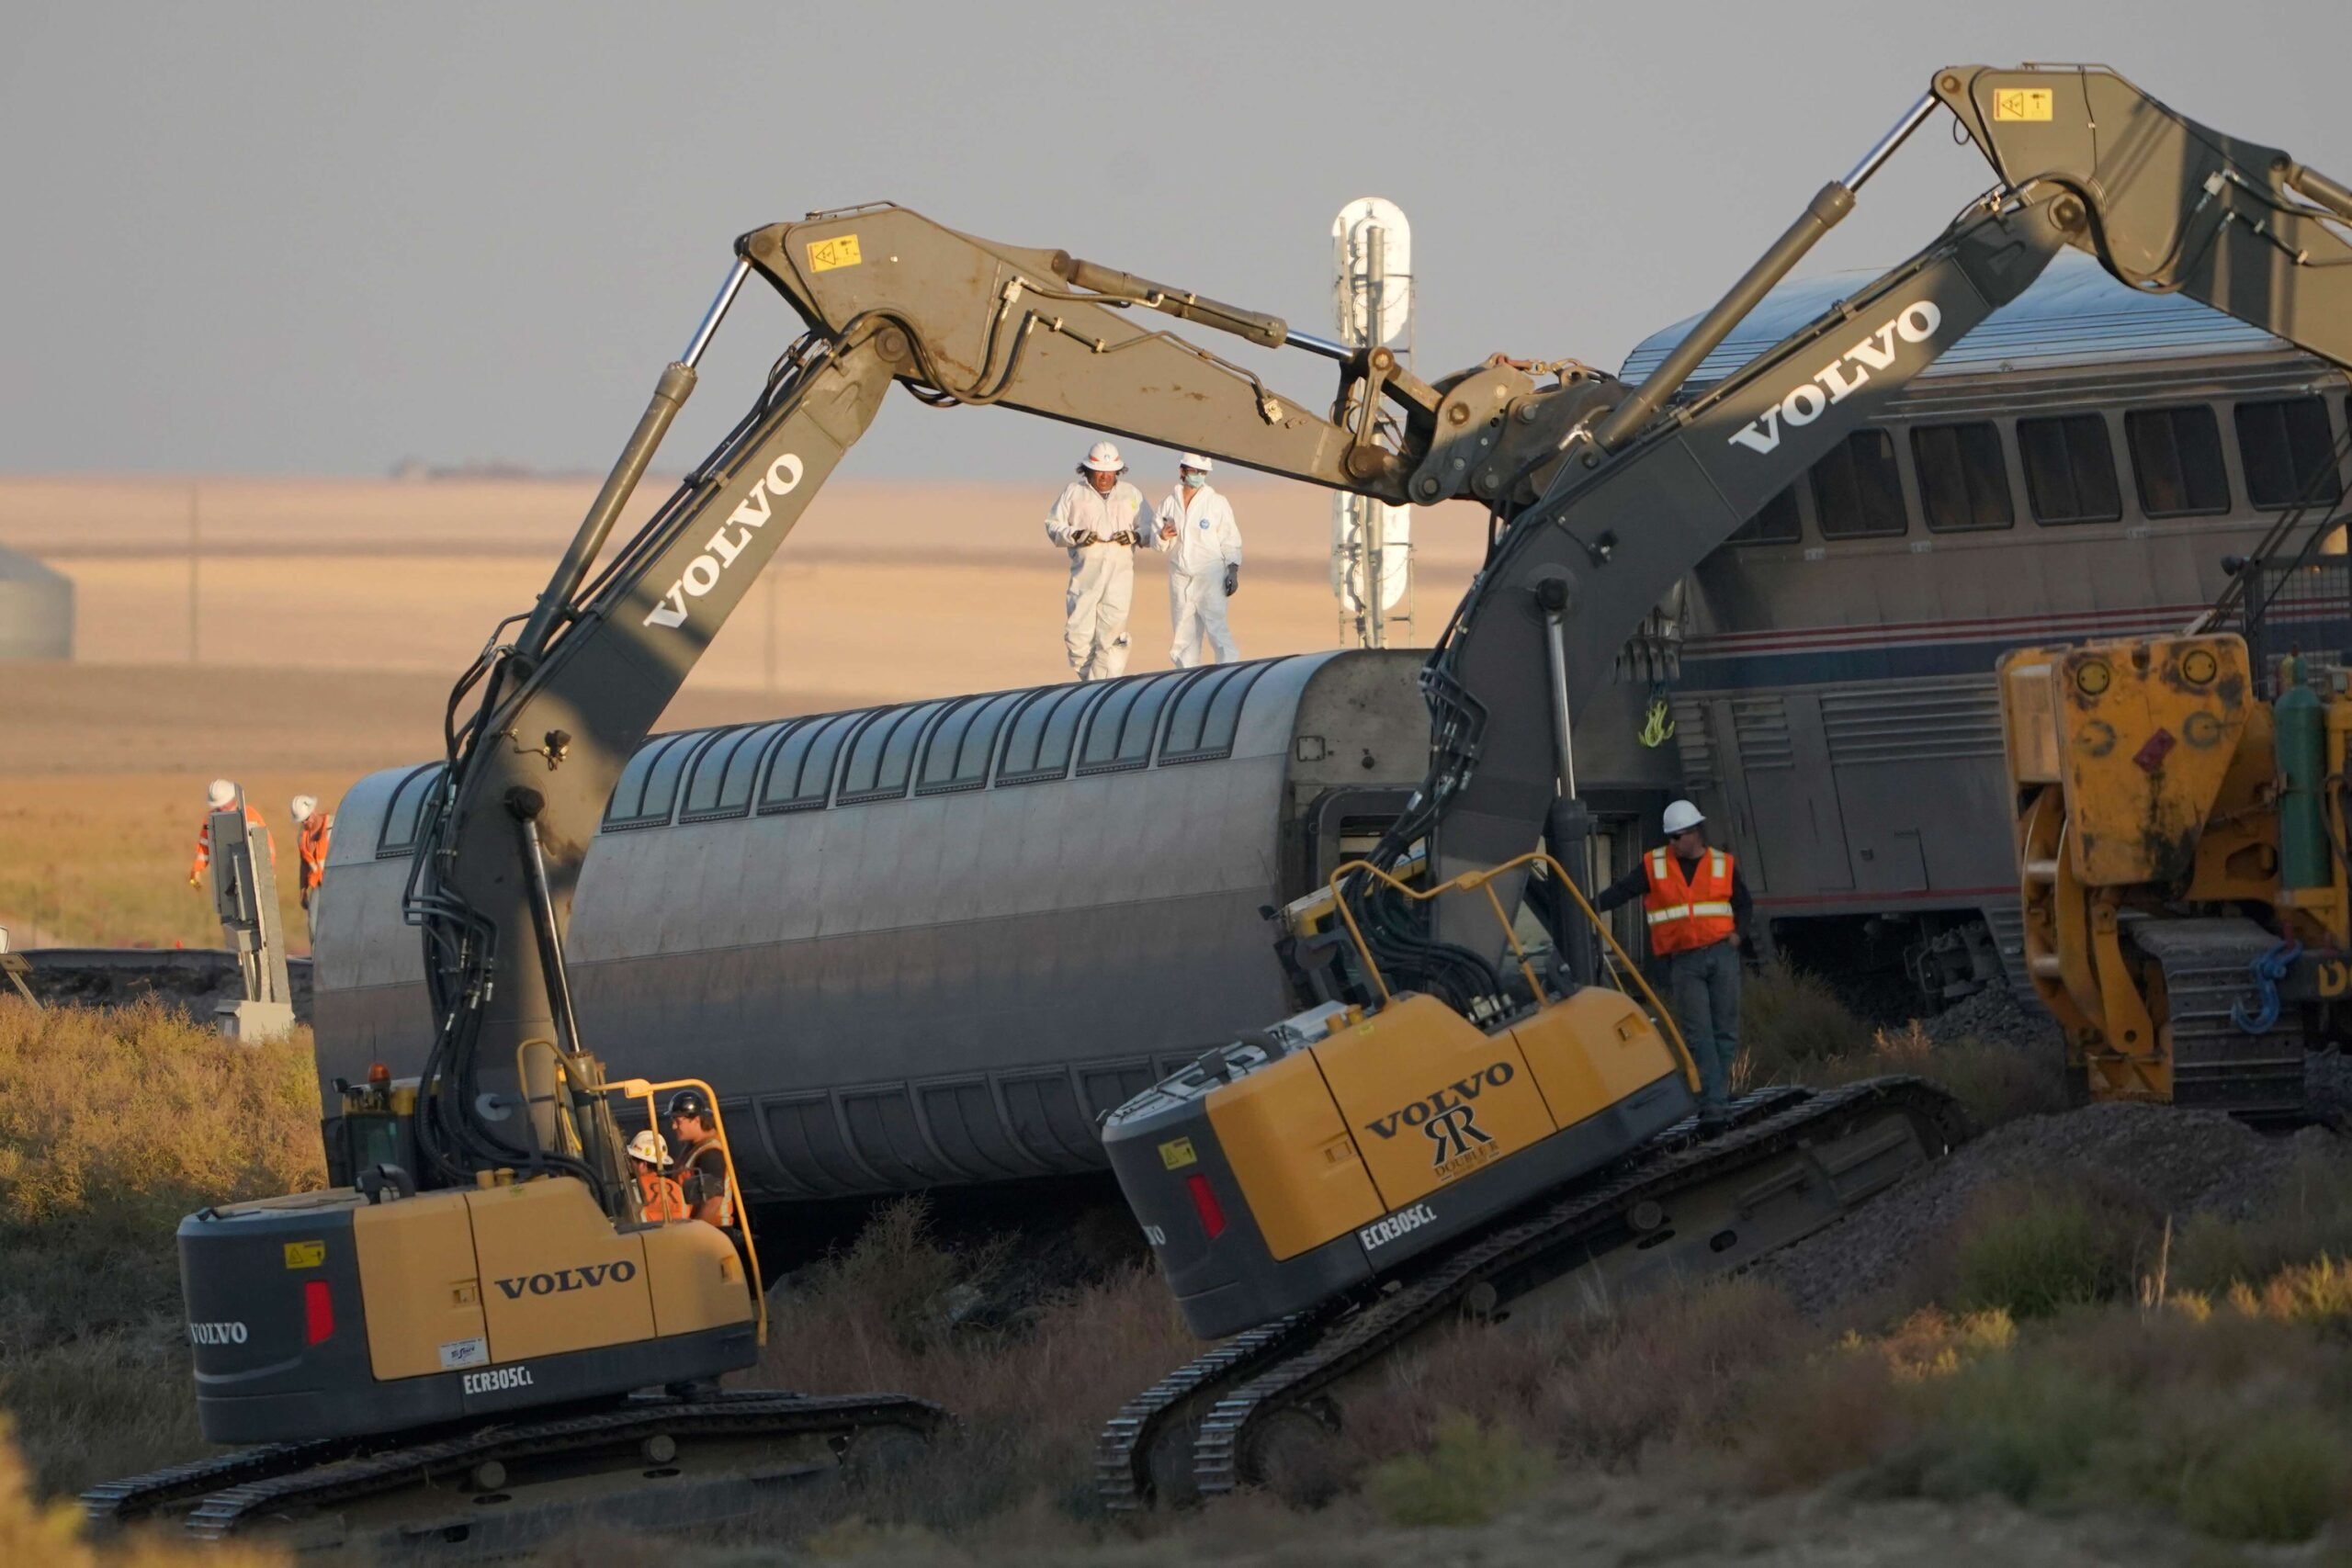 <i>Ted S. Warren/AP</i><br/>Workers stand on a train car on its side as front-loaders prop up another train car